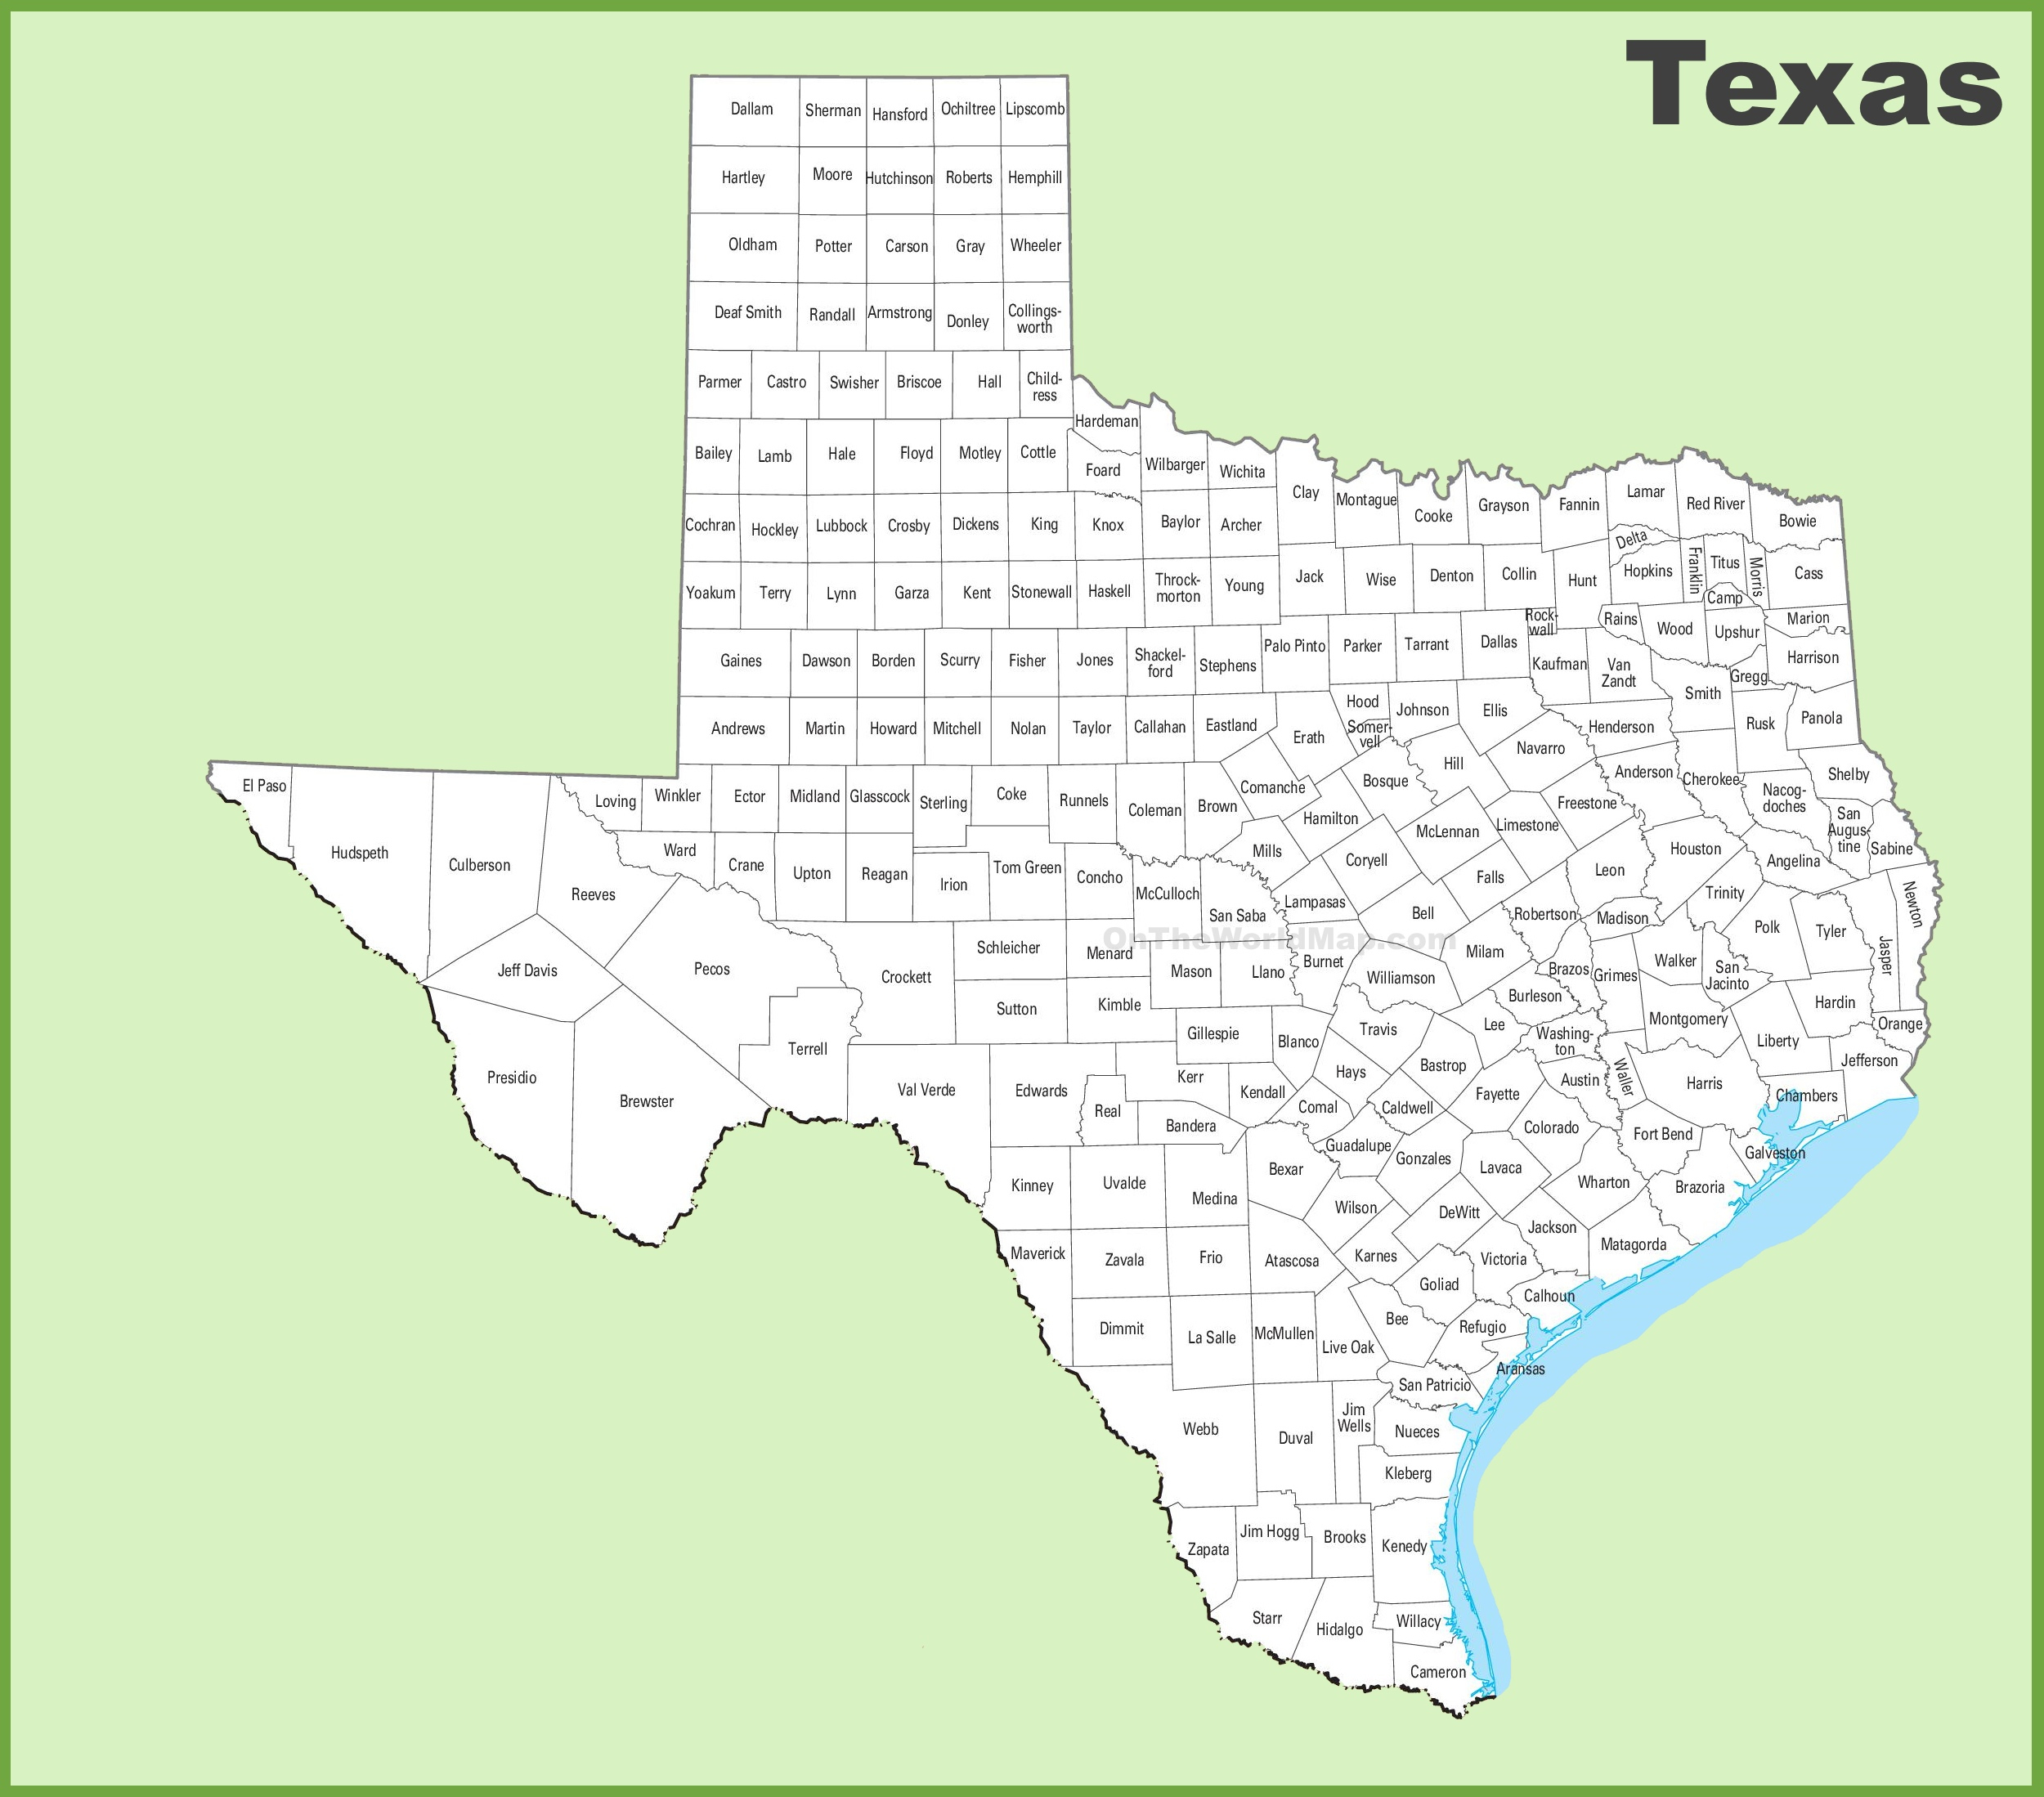 Texas County Map - Map Of Texas